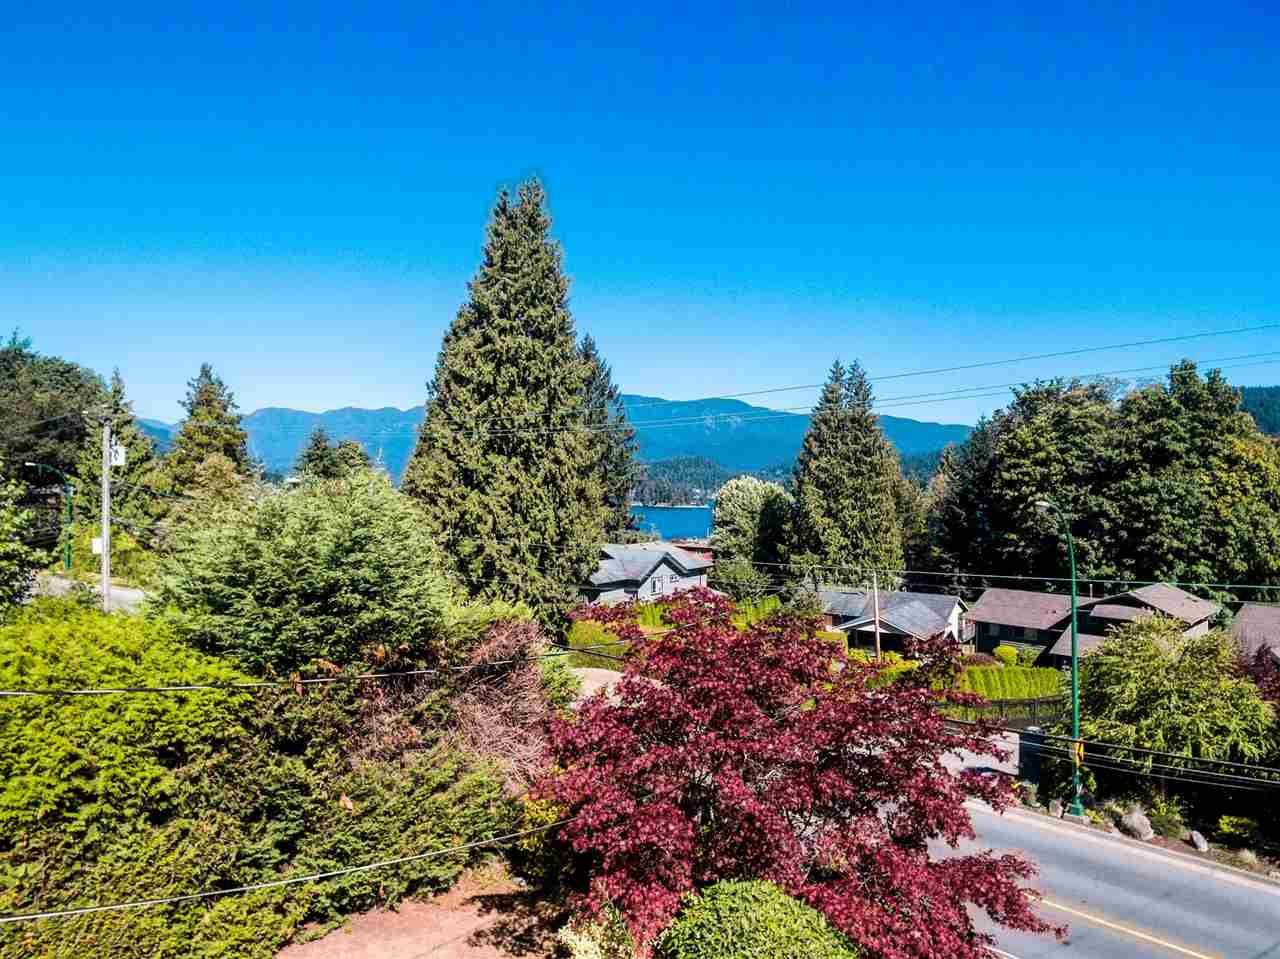 Multiple opportunities knock here!  With lovely mountain & ocean views, steps to Cates Park and minutes to everything that the vibrant and diverse North Shore has to offer. It's brilliant. The 11,868 S/F property sits high above Dollarton and backs on to Fairway Park--a blank palette for the landscaper in you. The  home has great bones (needs TLC), attractive west coast architecture & the versatile post-and-beam construction lends itself to an open-concept renovation. The Main Floor is 1700 S/F and features two large decks, perfect for entertaining. Lots of available FSR so a large addition is possible. Build new, around 6000 S/F possible. AM amazing opportunity either way.  Showings By Appointment Only.